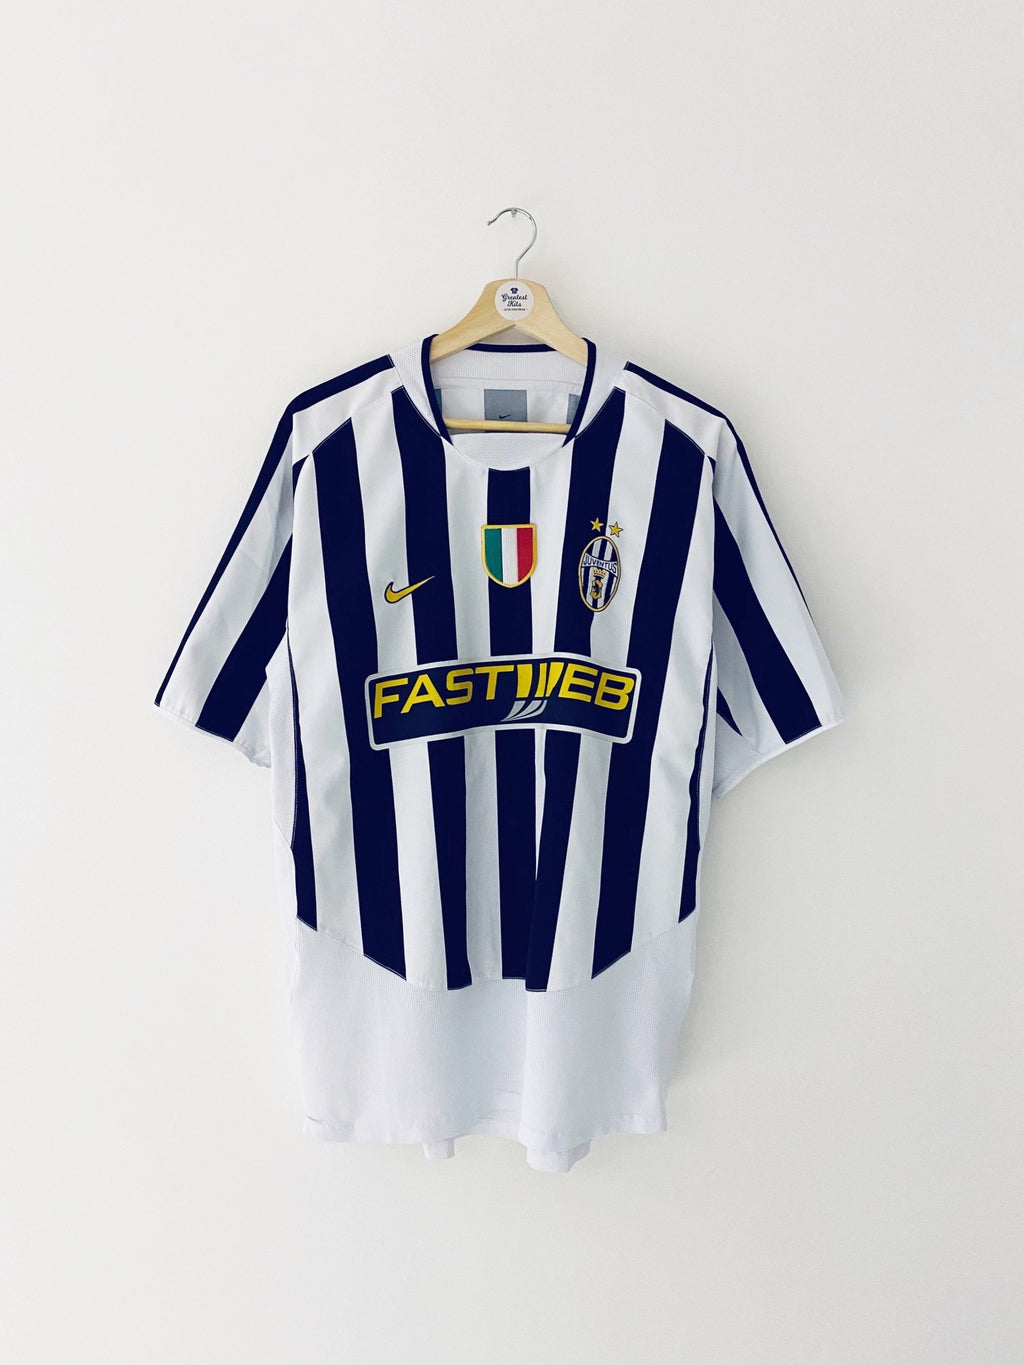 2003/04 Juventus Home Shirt (L) 8/10